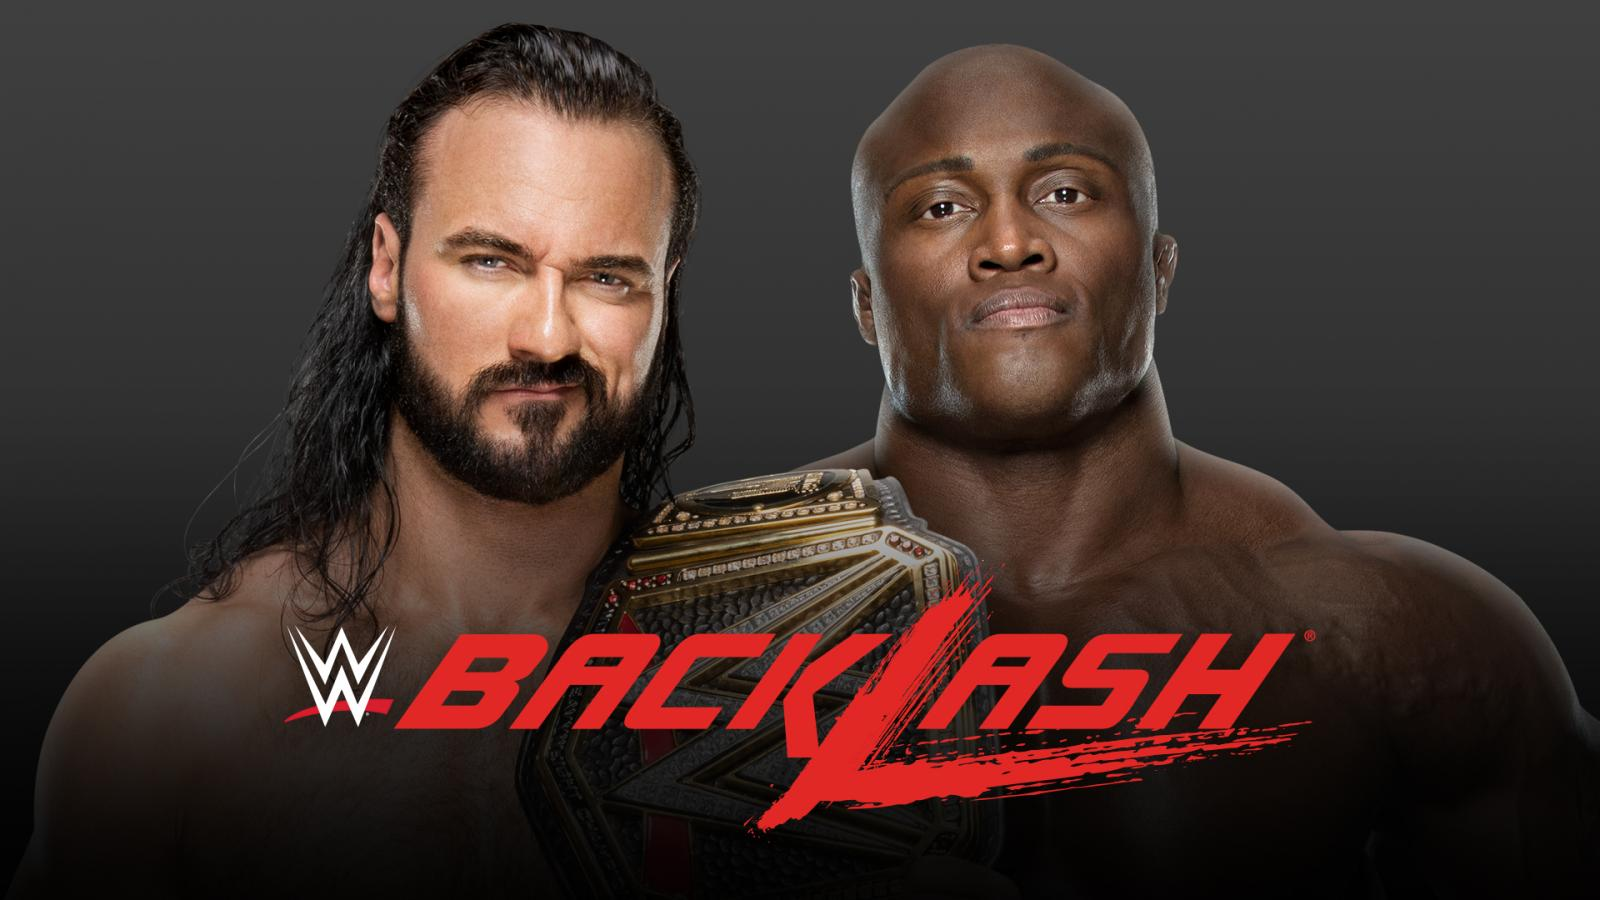 How to watch Backlash 2020